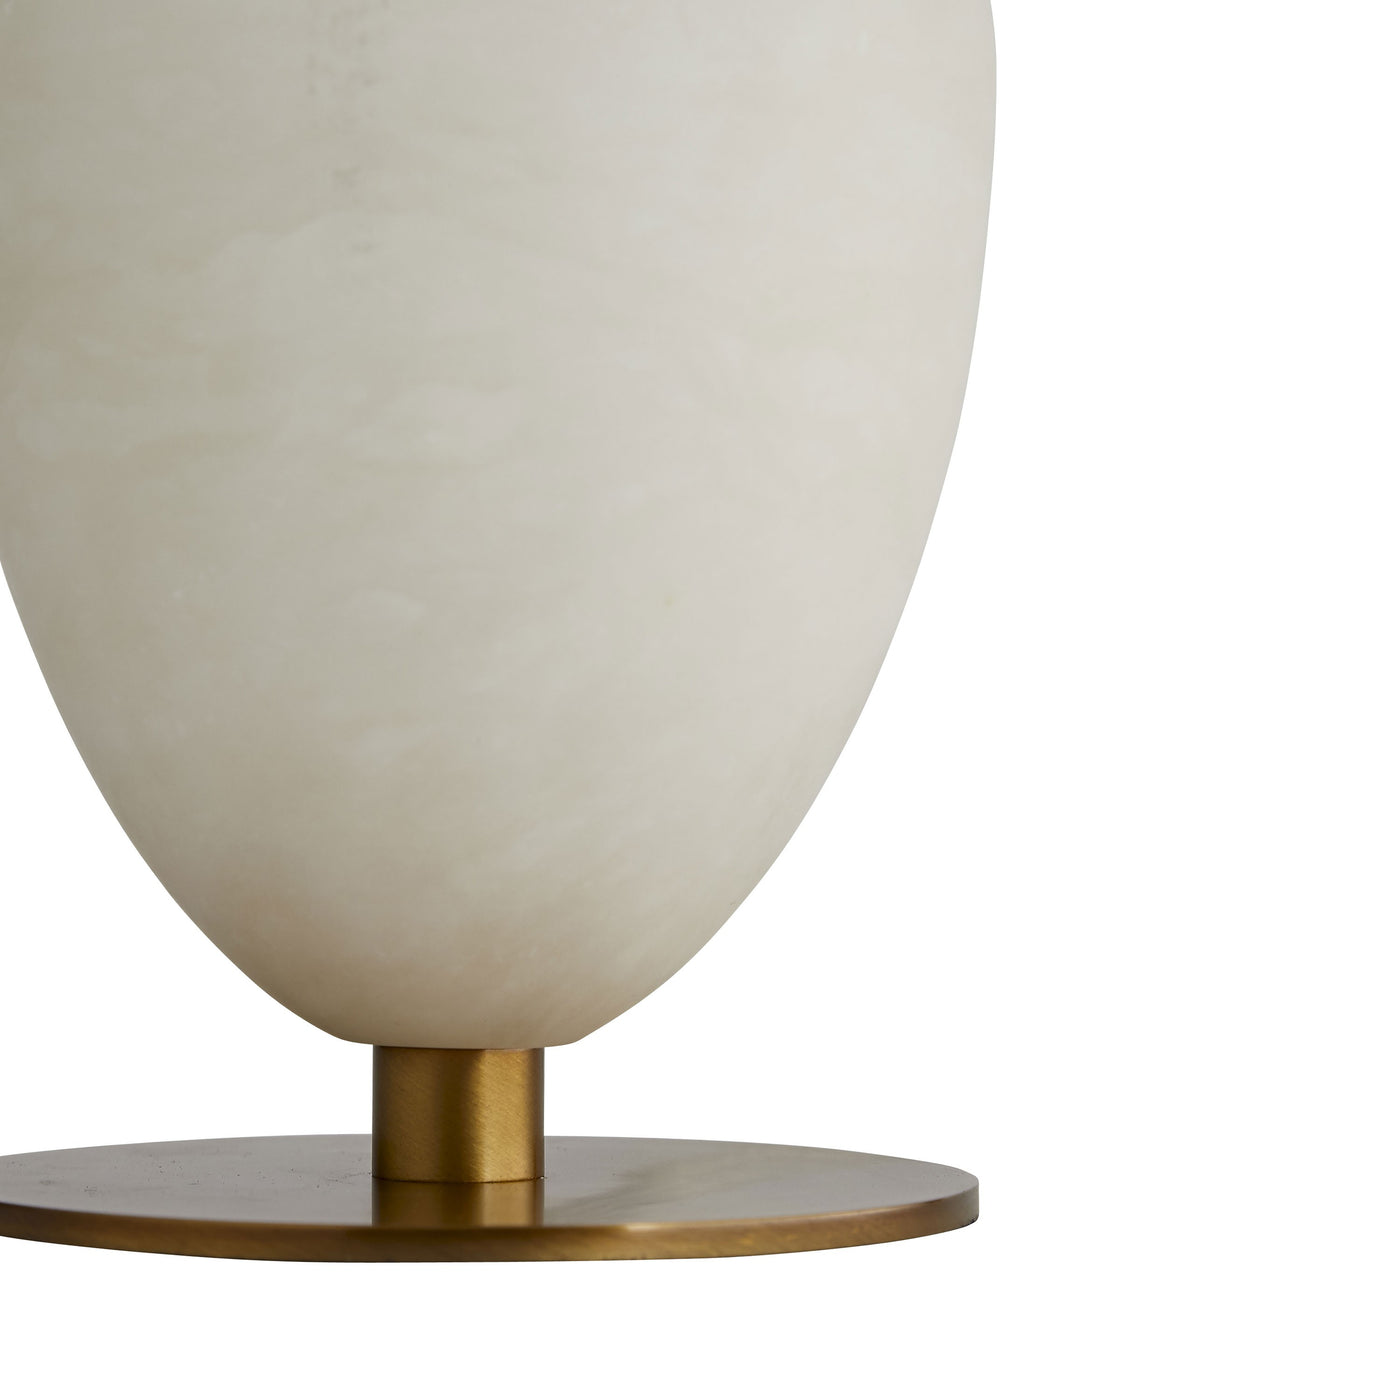 Arteriors-Home-Casper-Lamp-base-detail